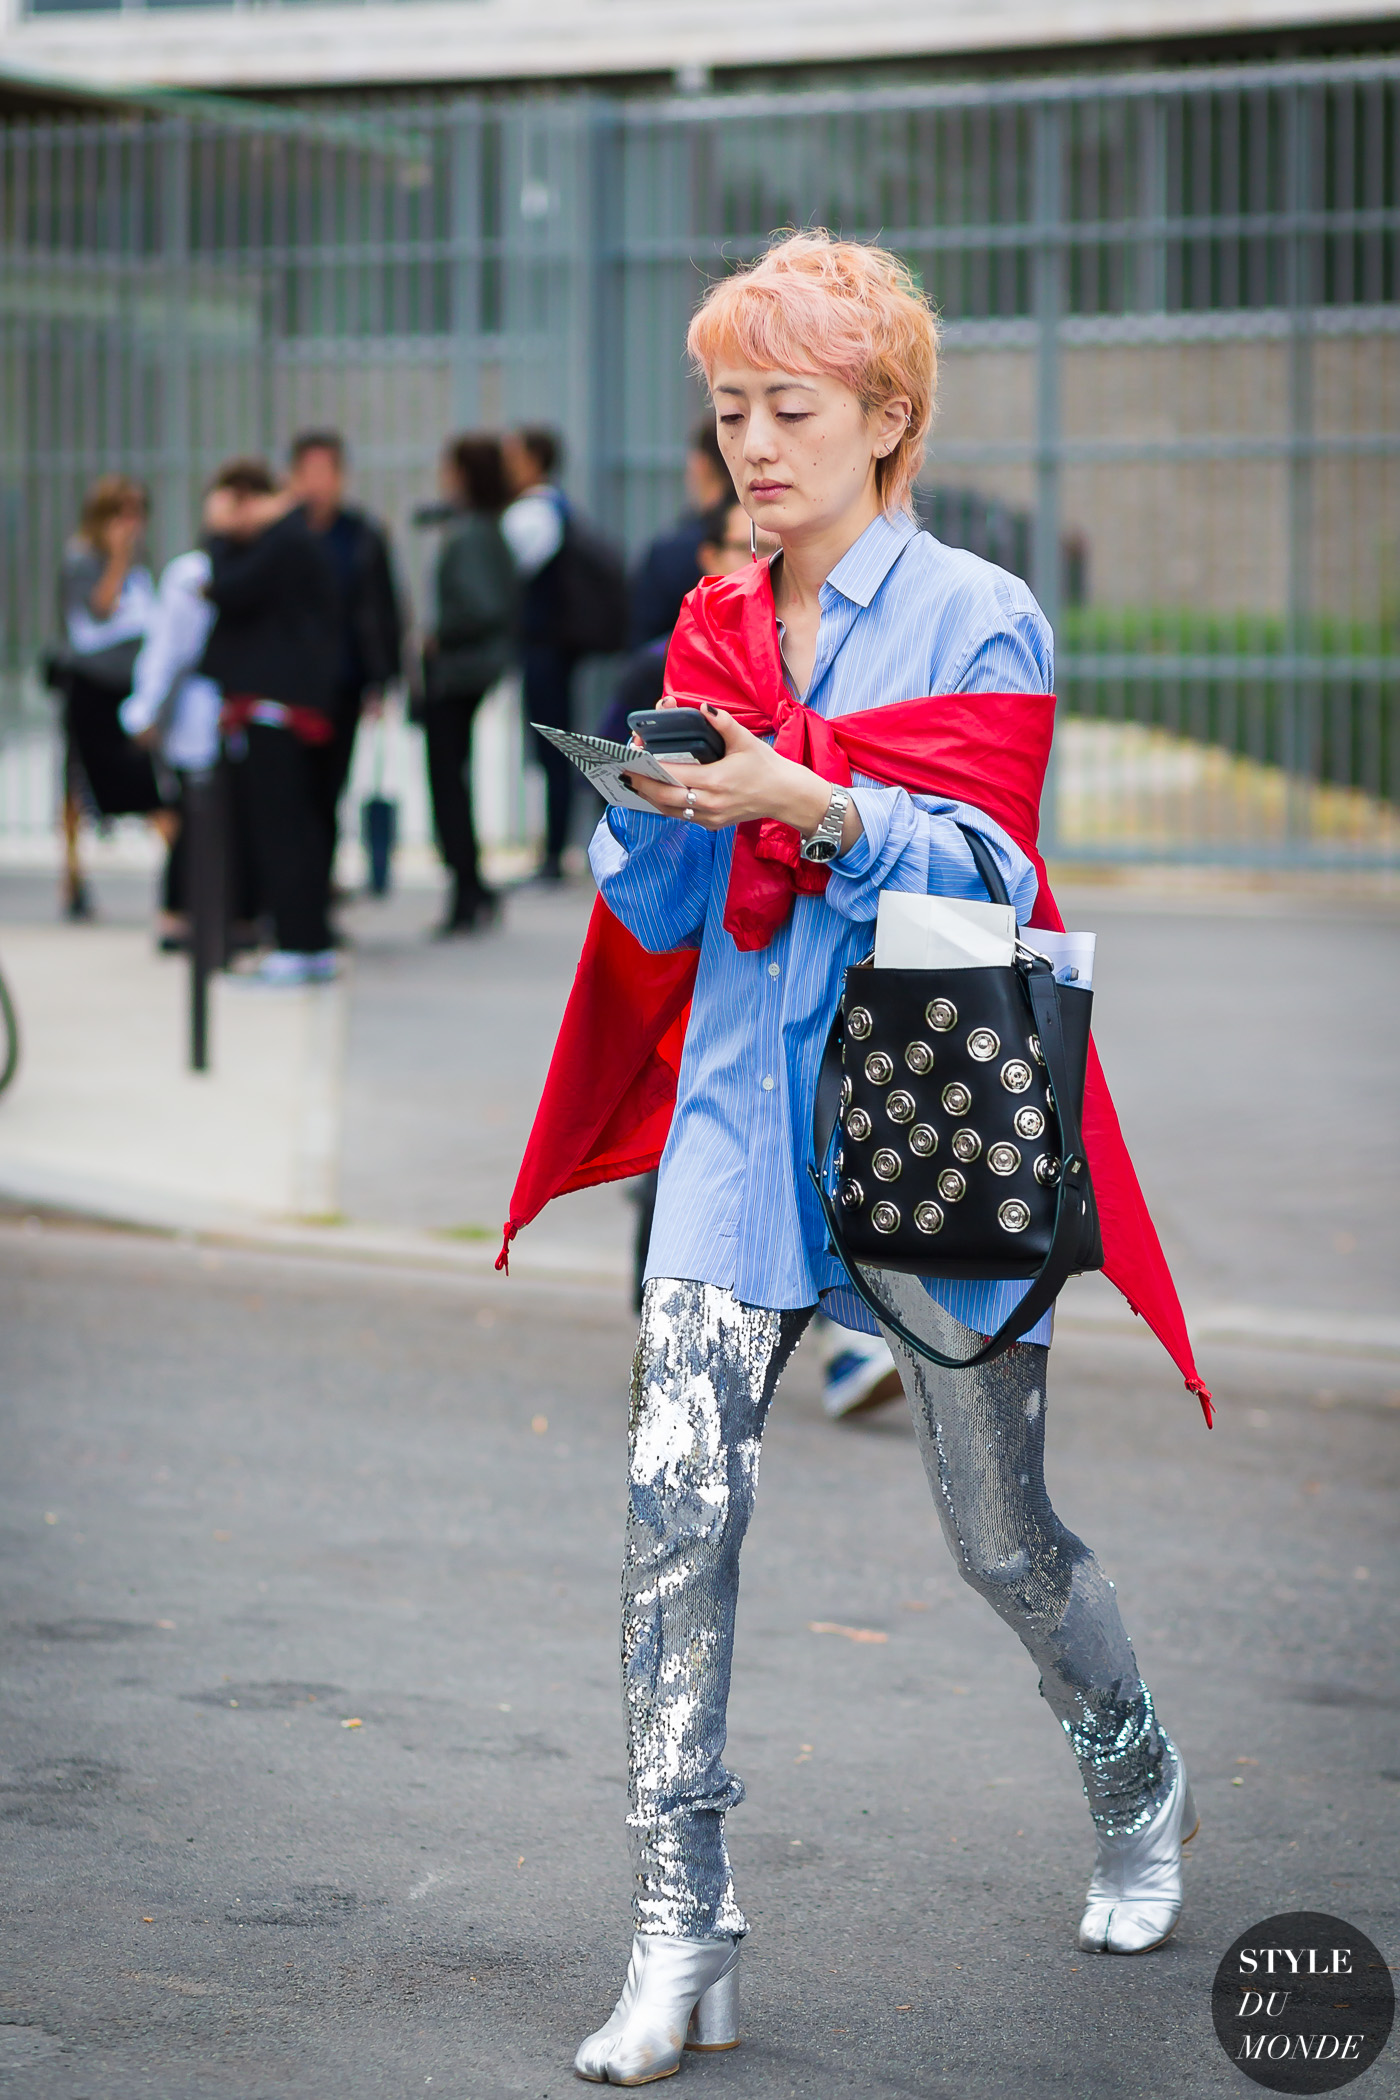 itoi-kuriyama-by-styledumonde-street-style-fashion-photography